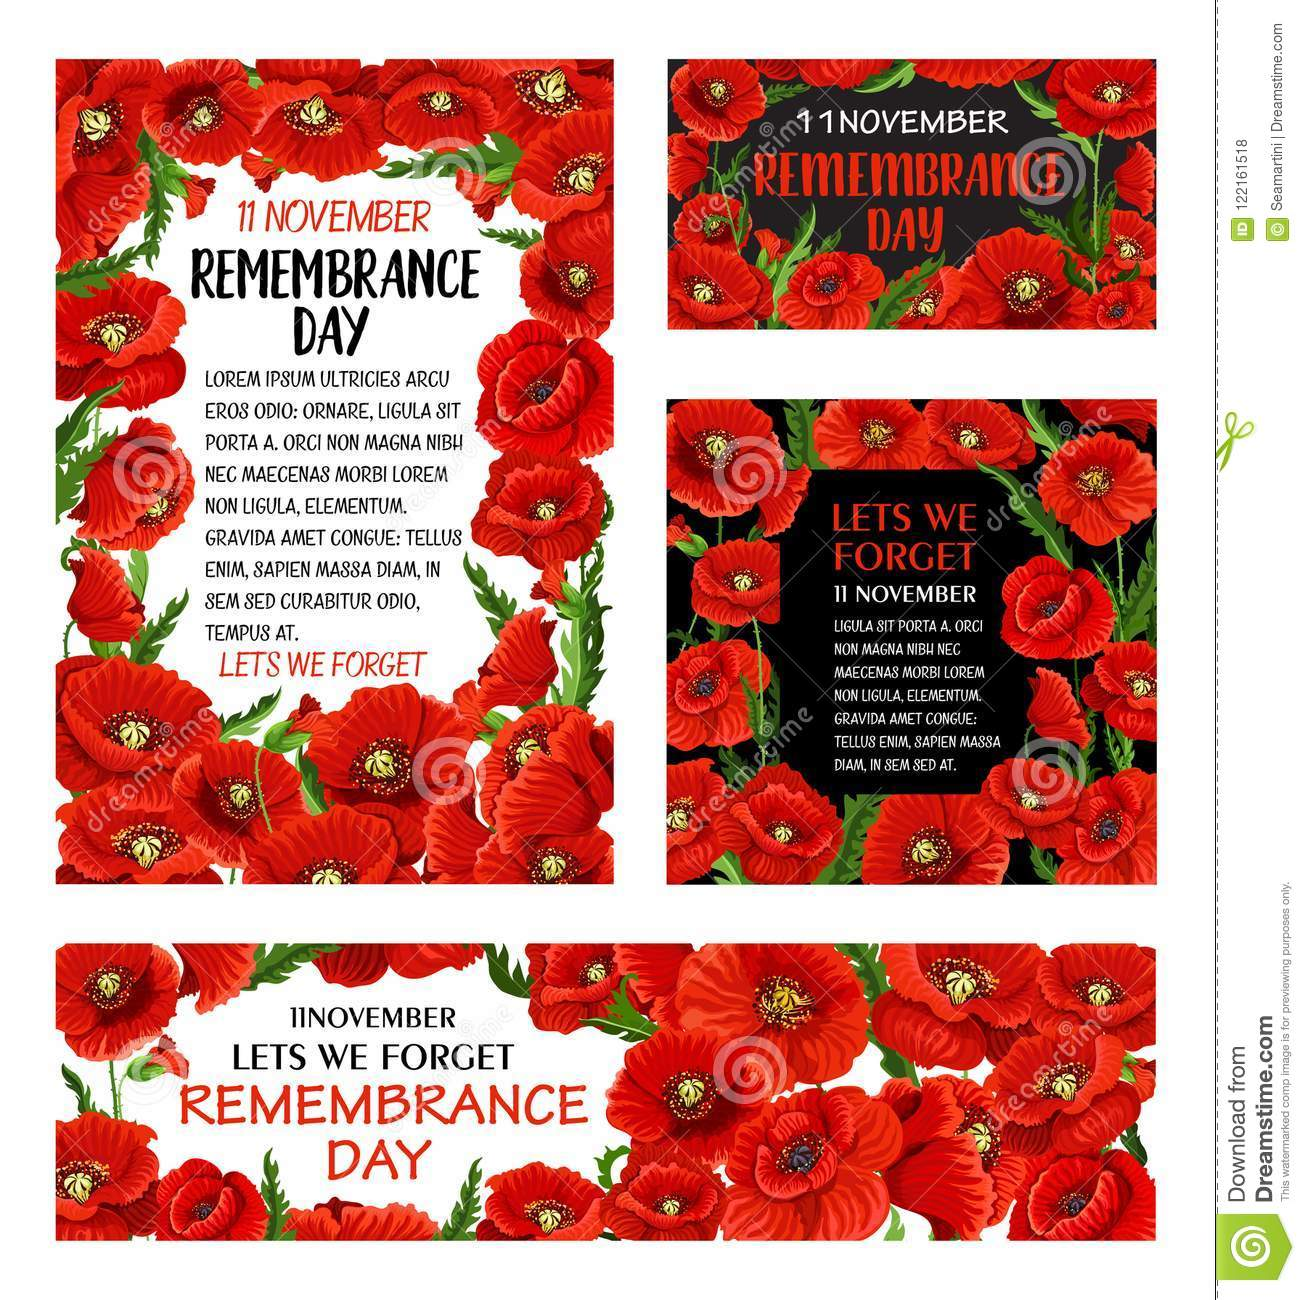 Remembrance Day Red Poppy Flower Poster Design Stock Vector